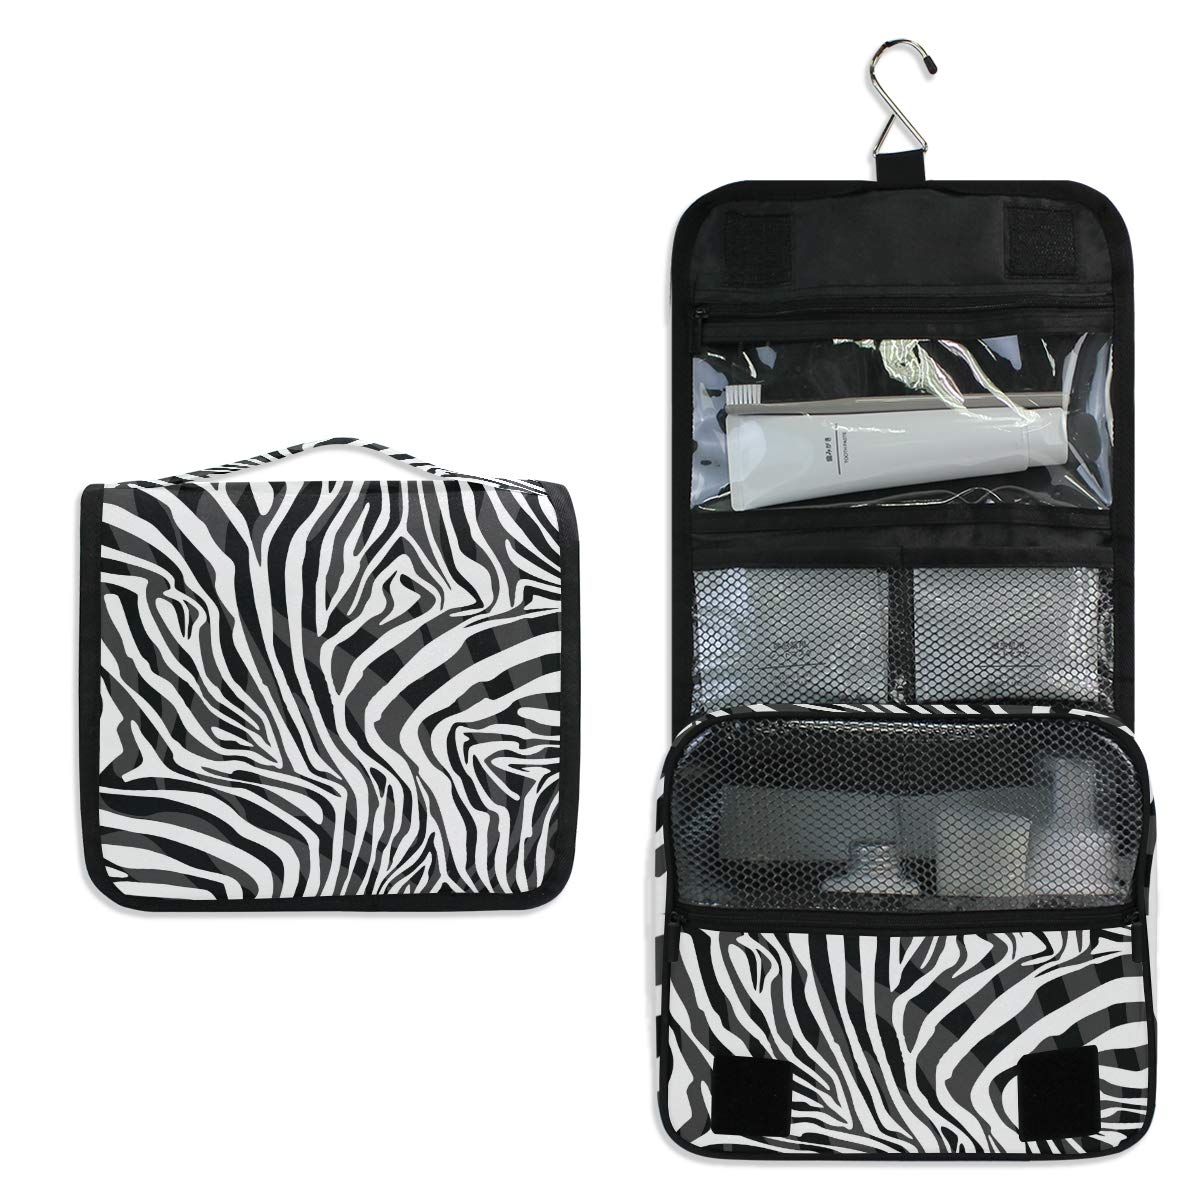 BEETTY Hanging Travel Toiletry Bag Zebra Print Portable Makeup Organizer Cosmetic Bag Toiletry Kit for Women & Man